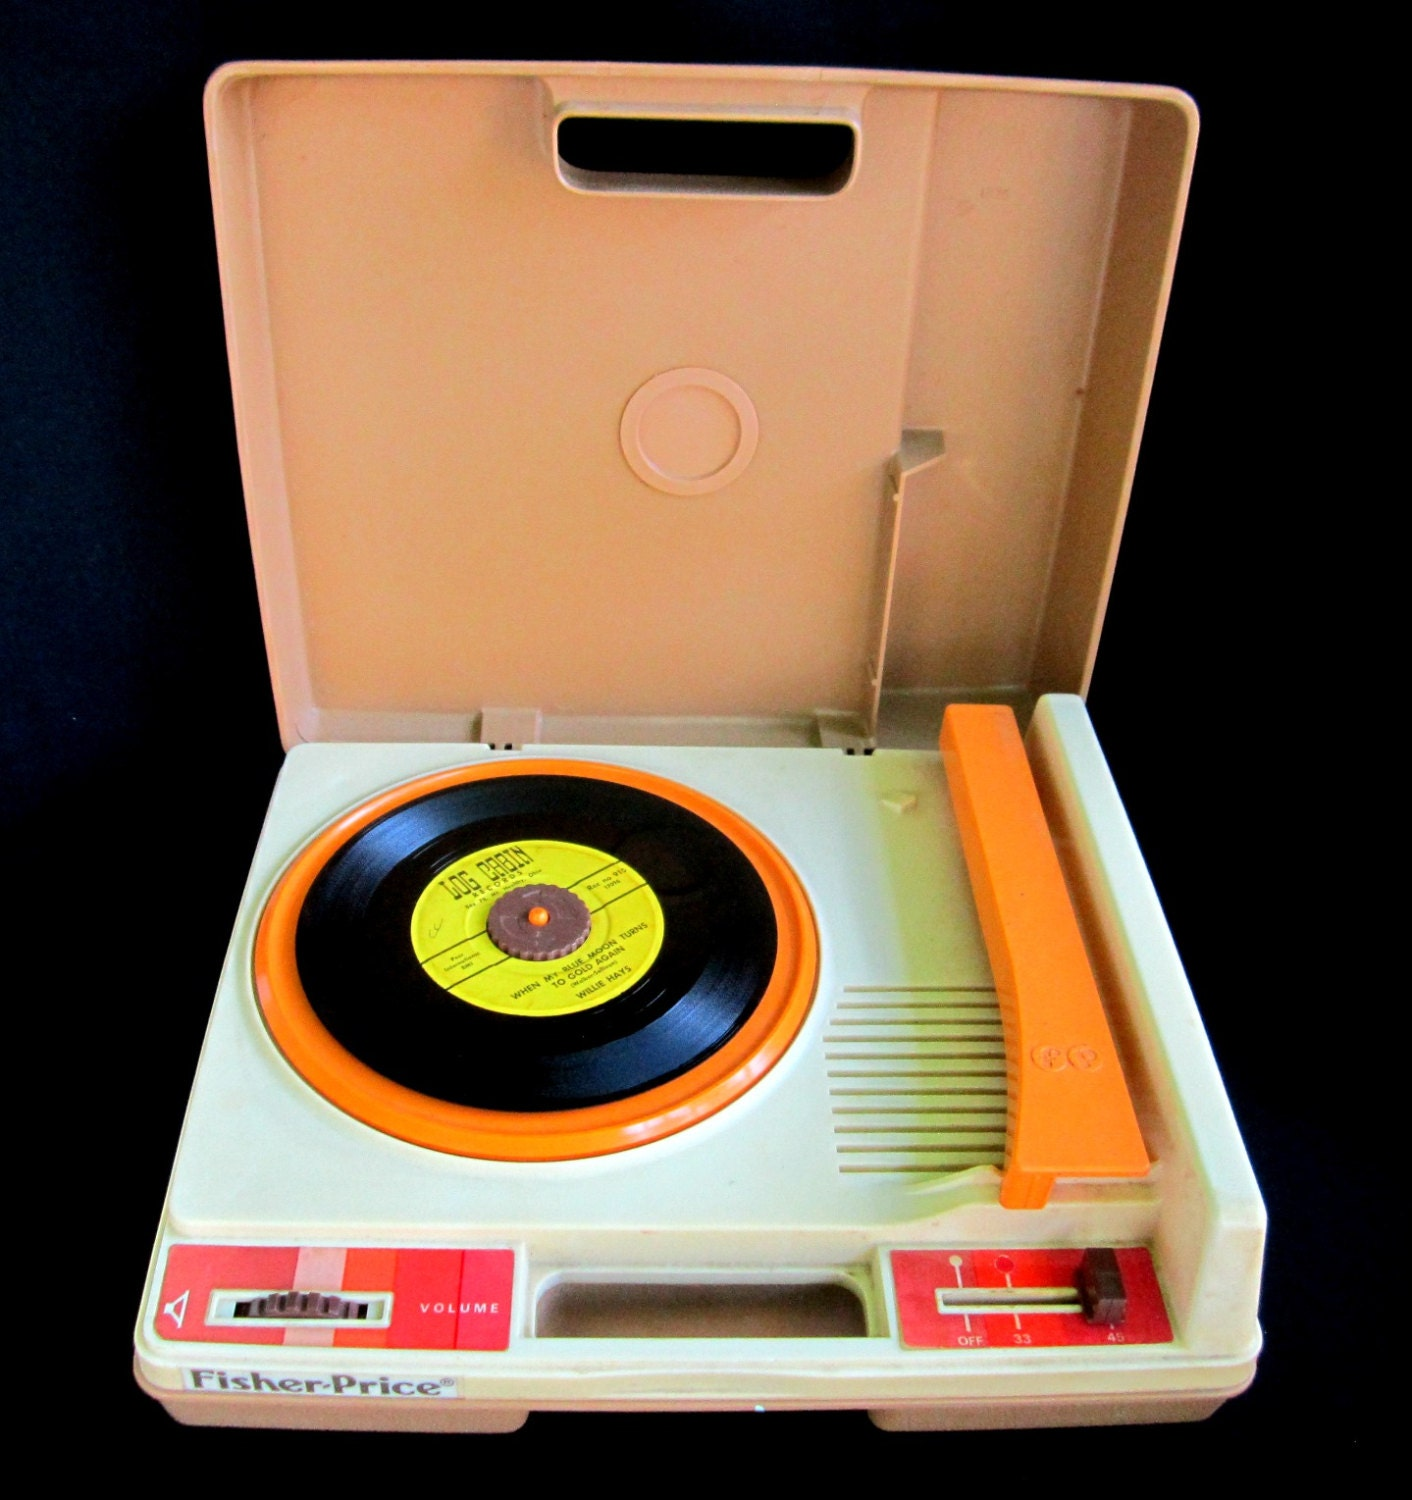 fisher price toys working vintage record player turn table. Black Bedroom Furniture Sets. Home Design Ideas